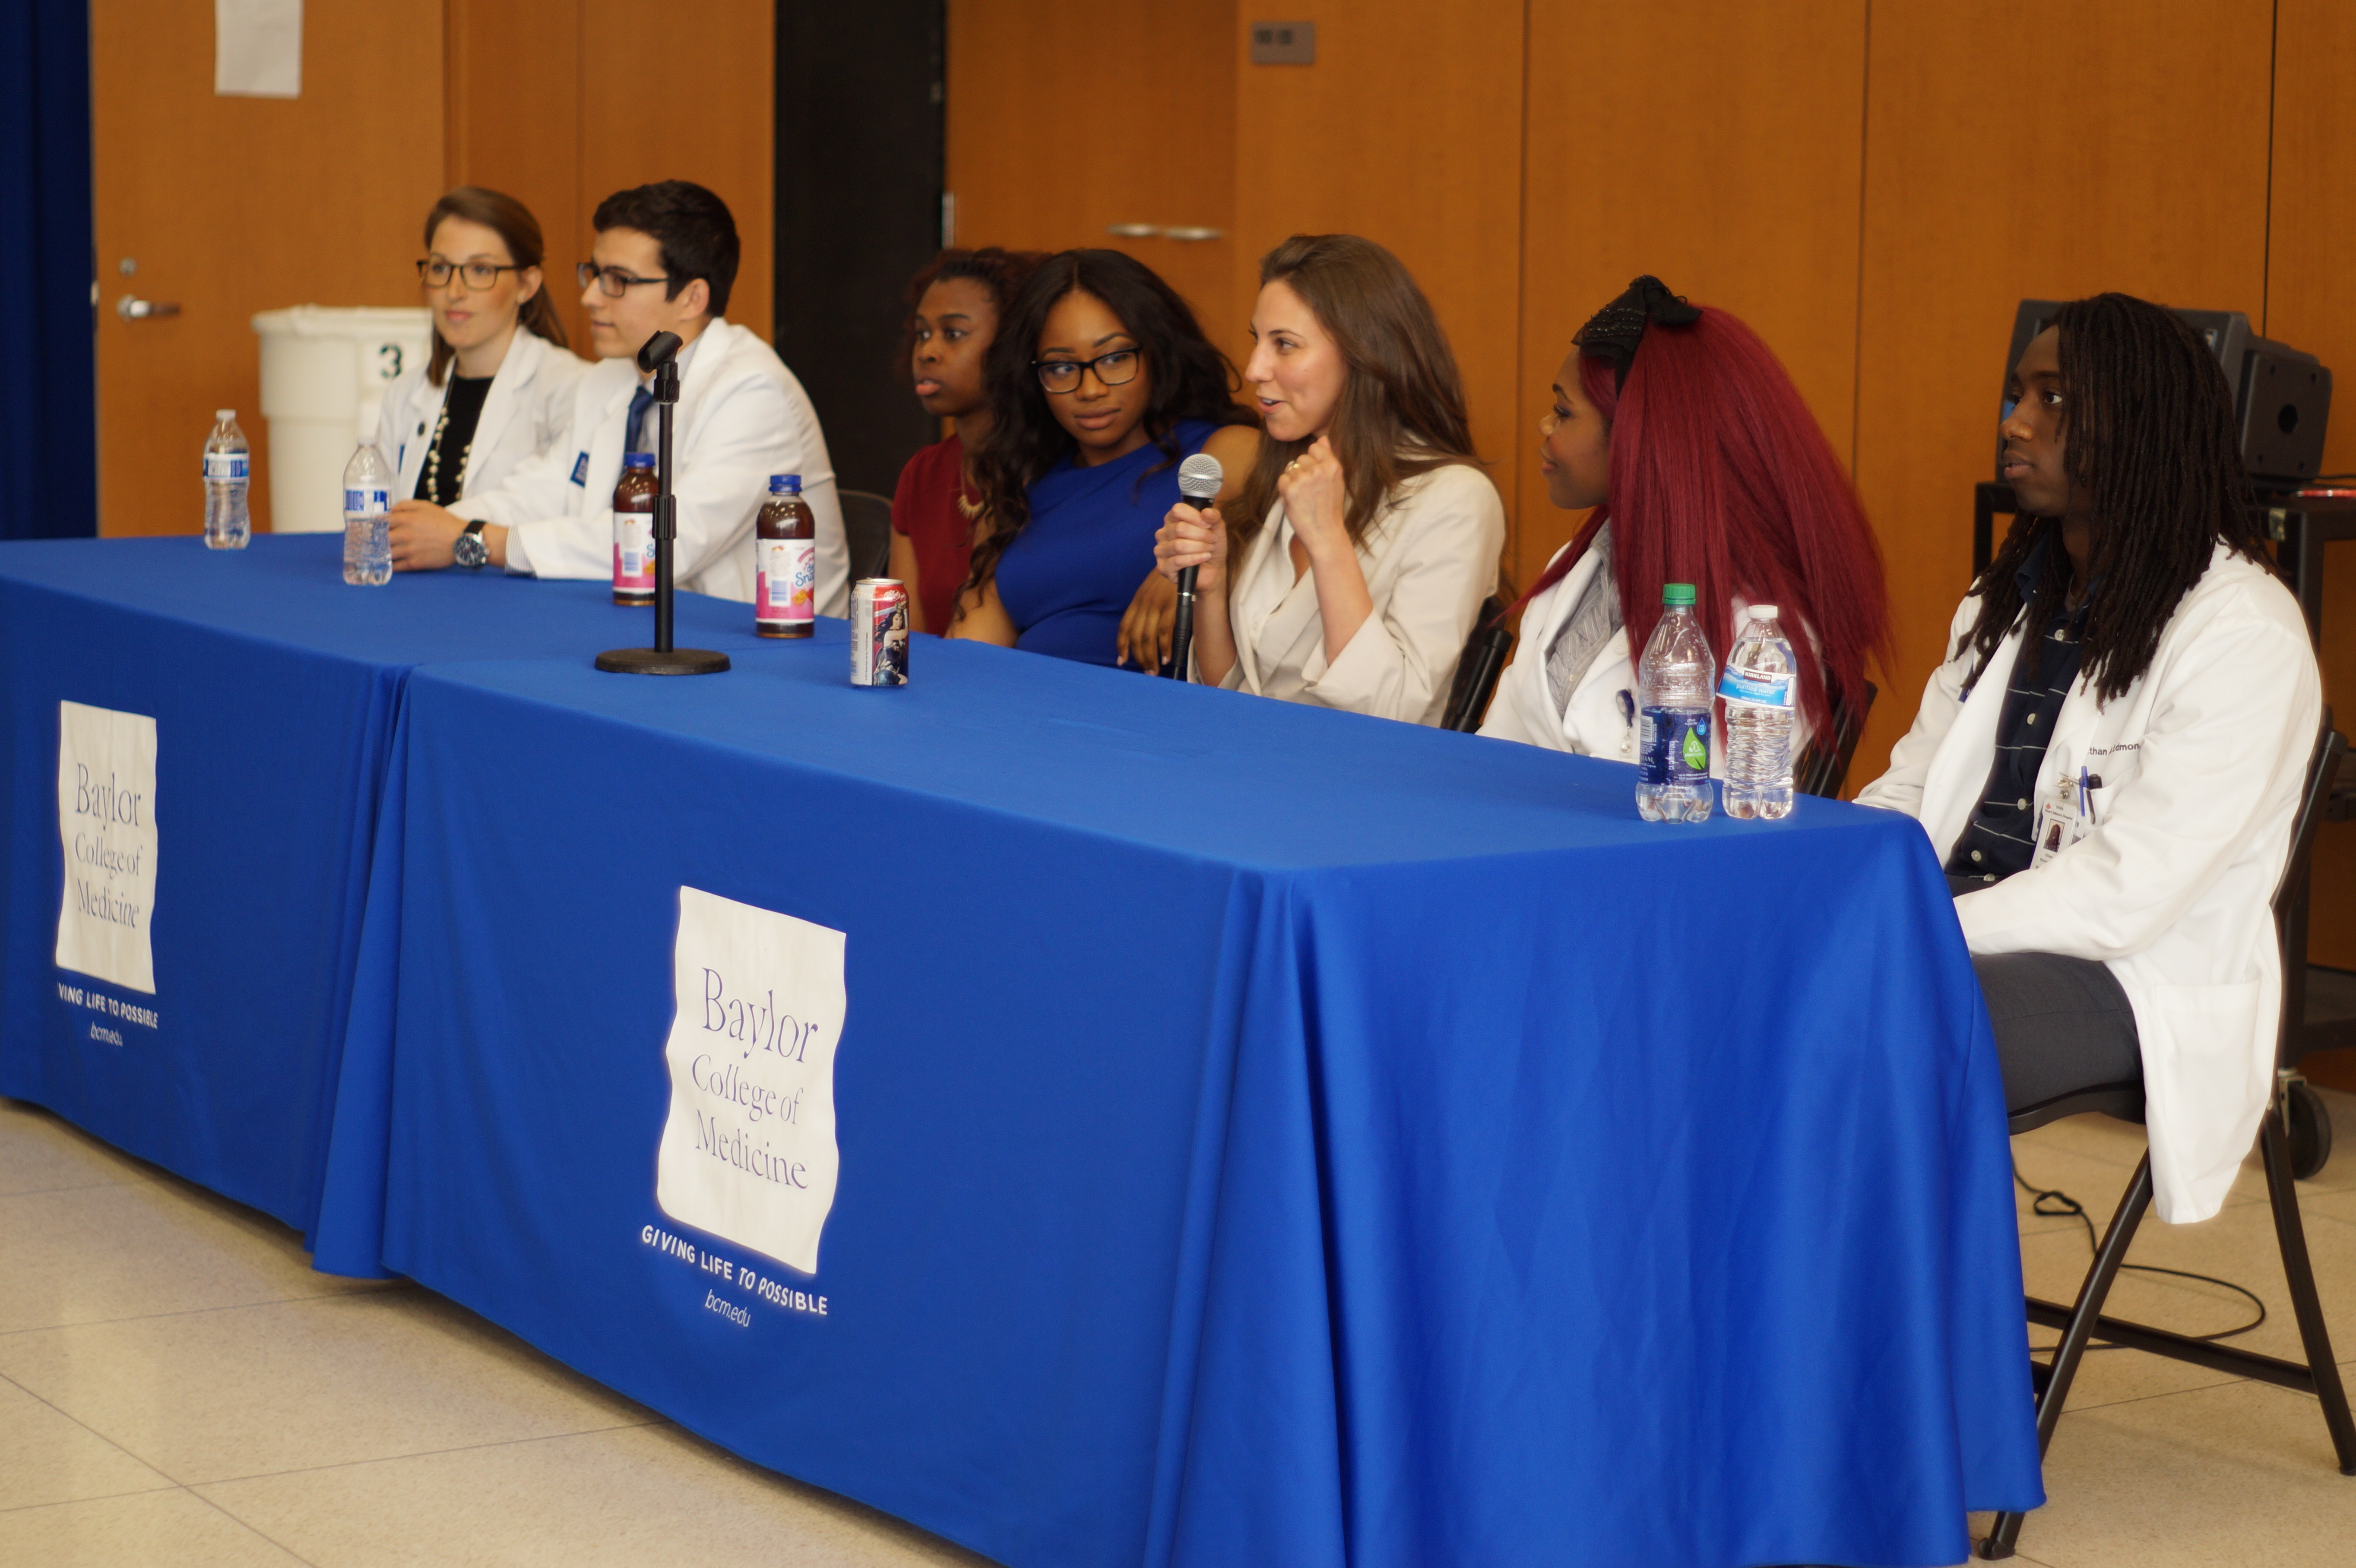 Panel of current medical school, biomedical science, and allied health science students offering advice for admission, academic success, wellness, and professional development.